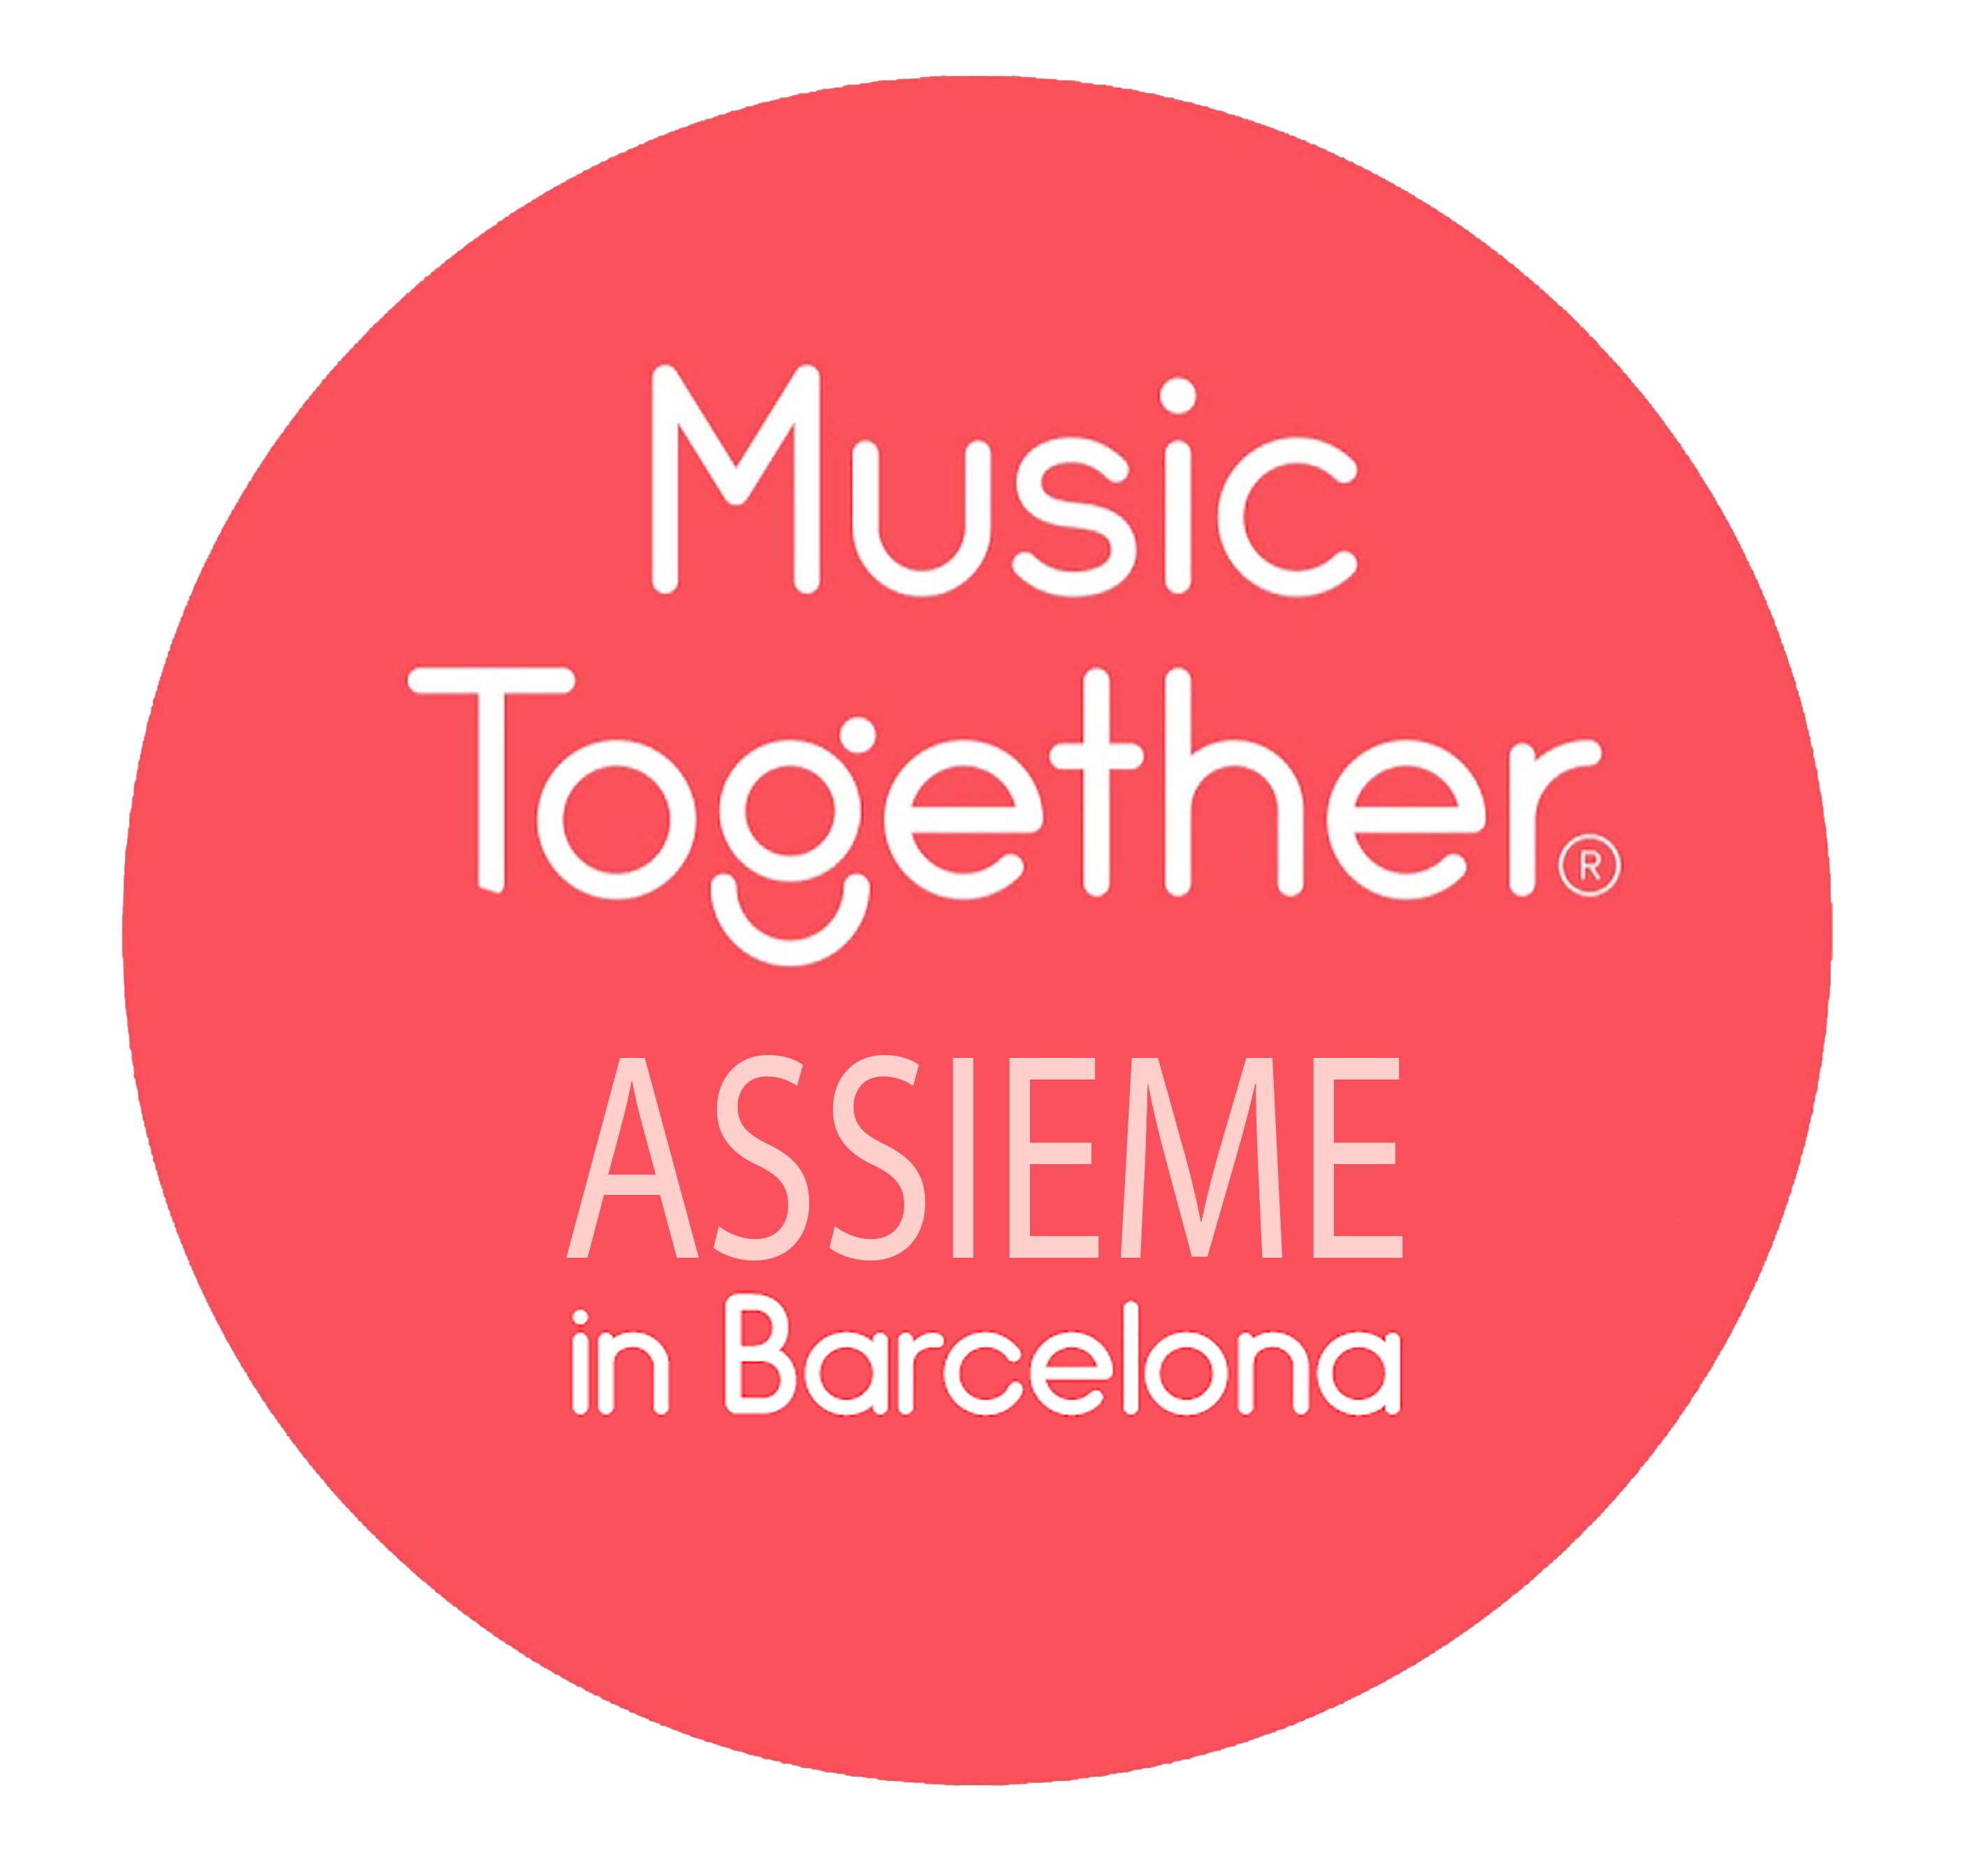 Music Together® ASSIEME